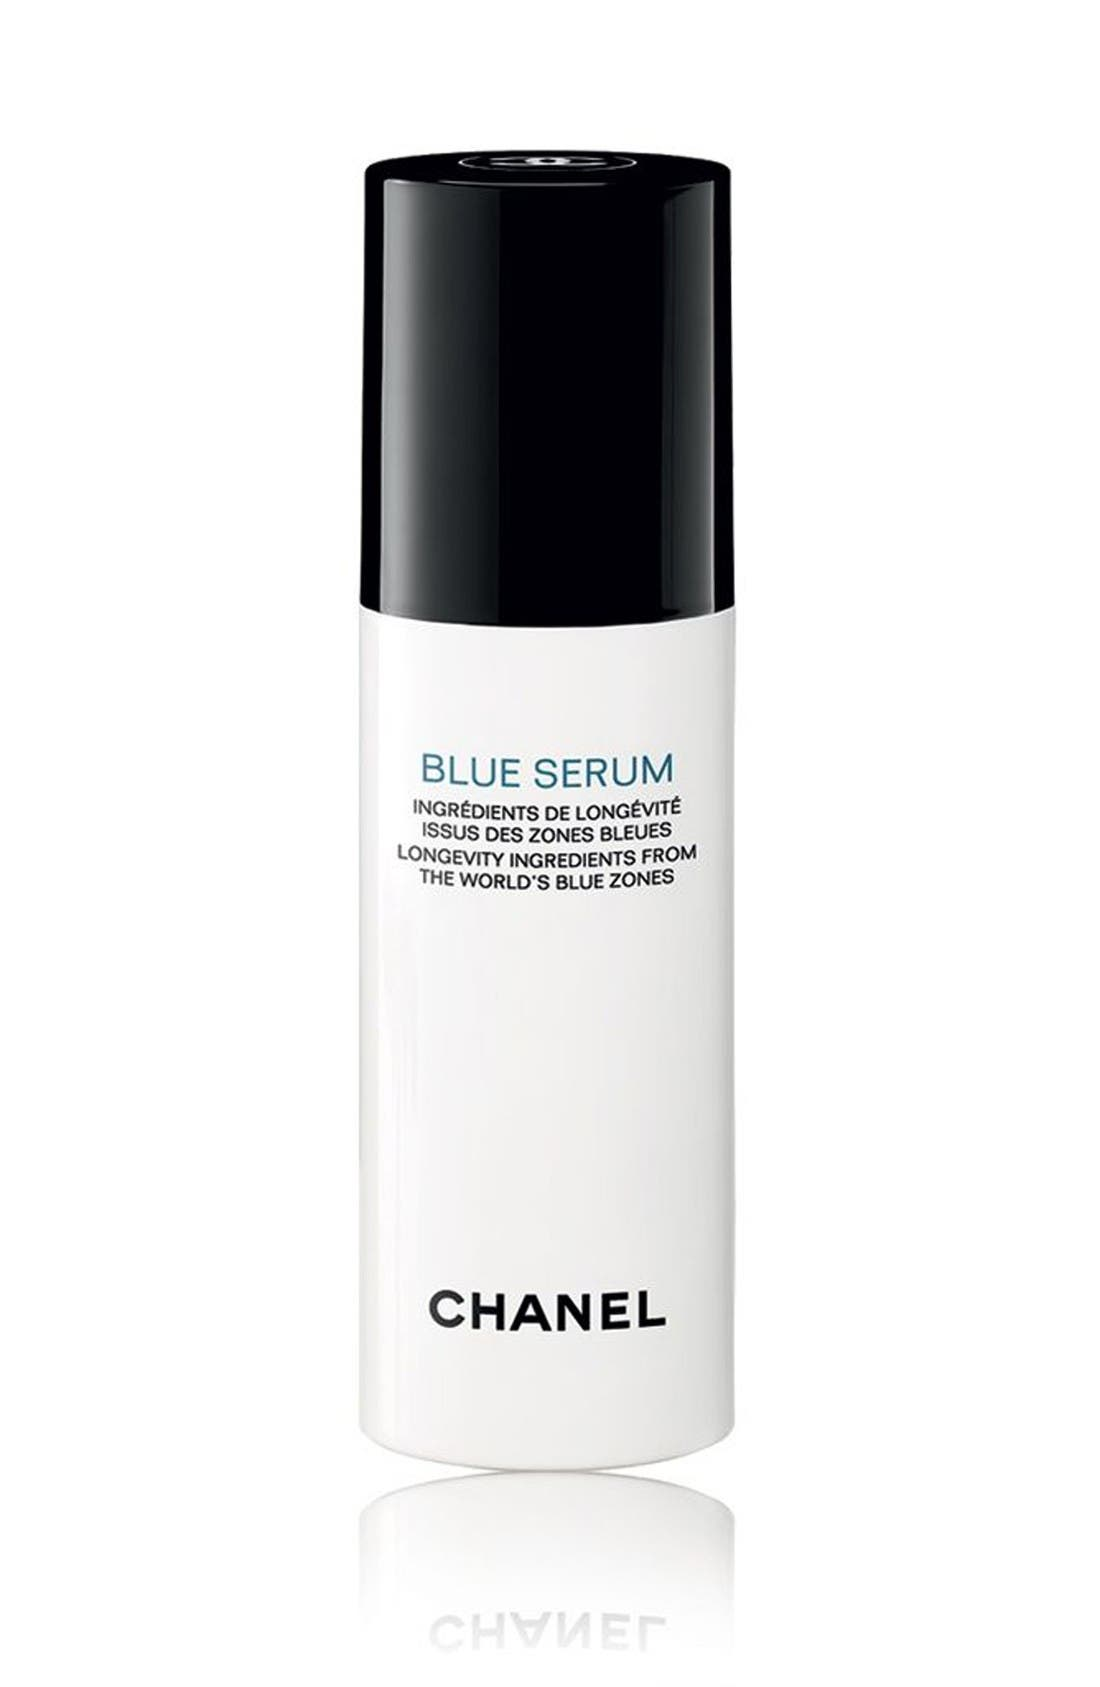 Alternate Image 1 Selected - CHANEL BLUE SERUM  Longevity Ingredients From The World's Blue Zones